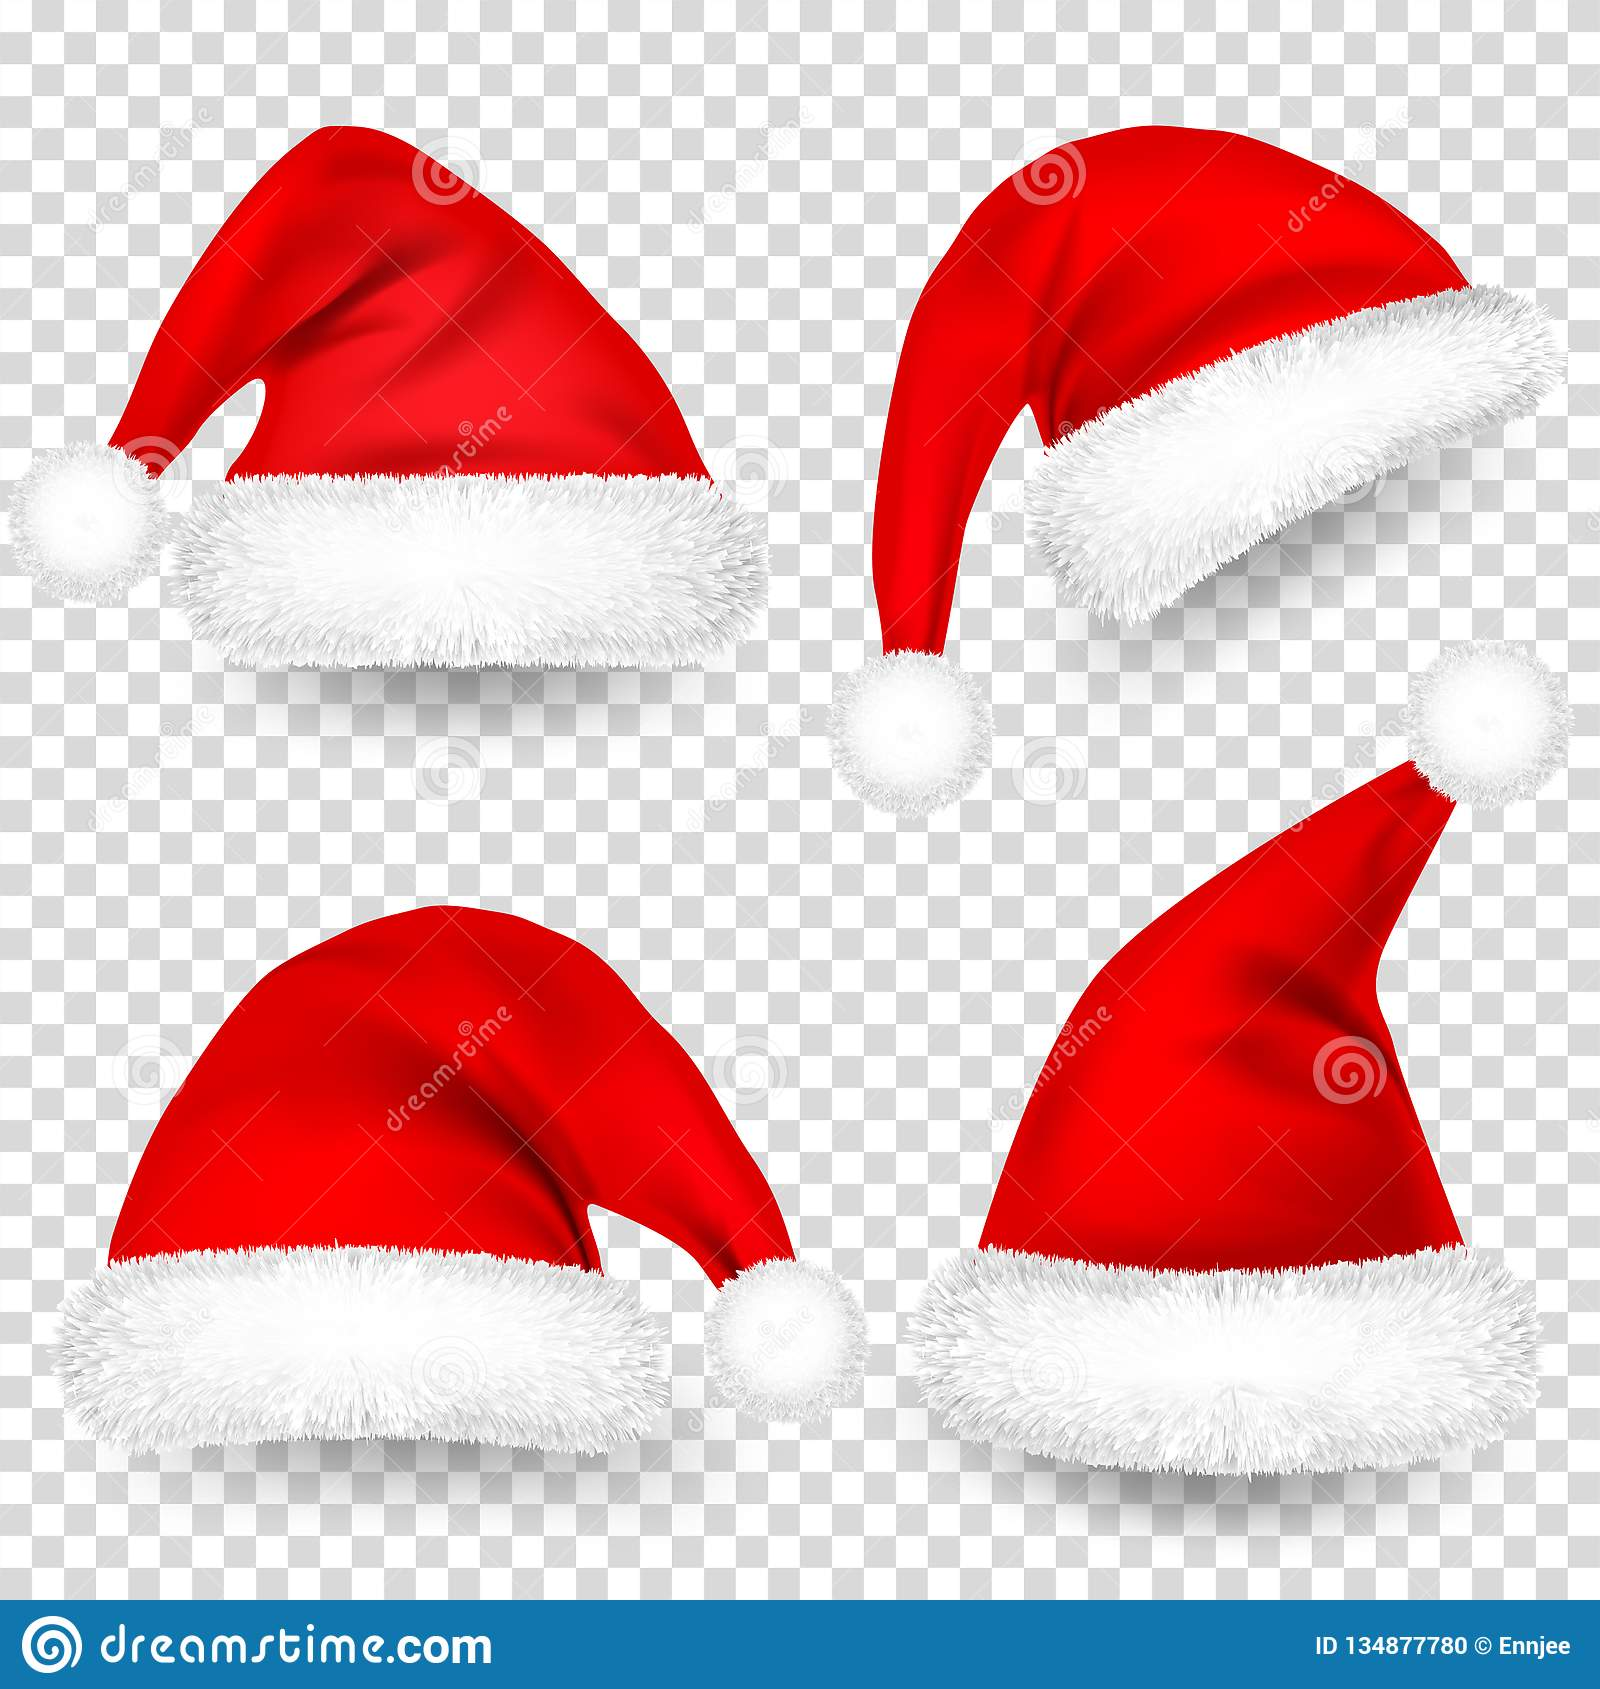 Transparent Christmas Hat.Christmas Santa Claus Hats With Fur And Shadow Set New Year